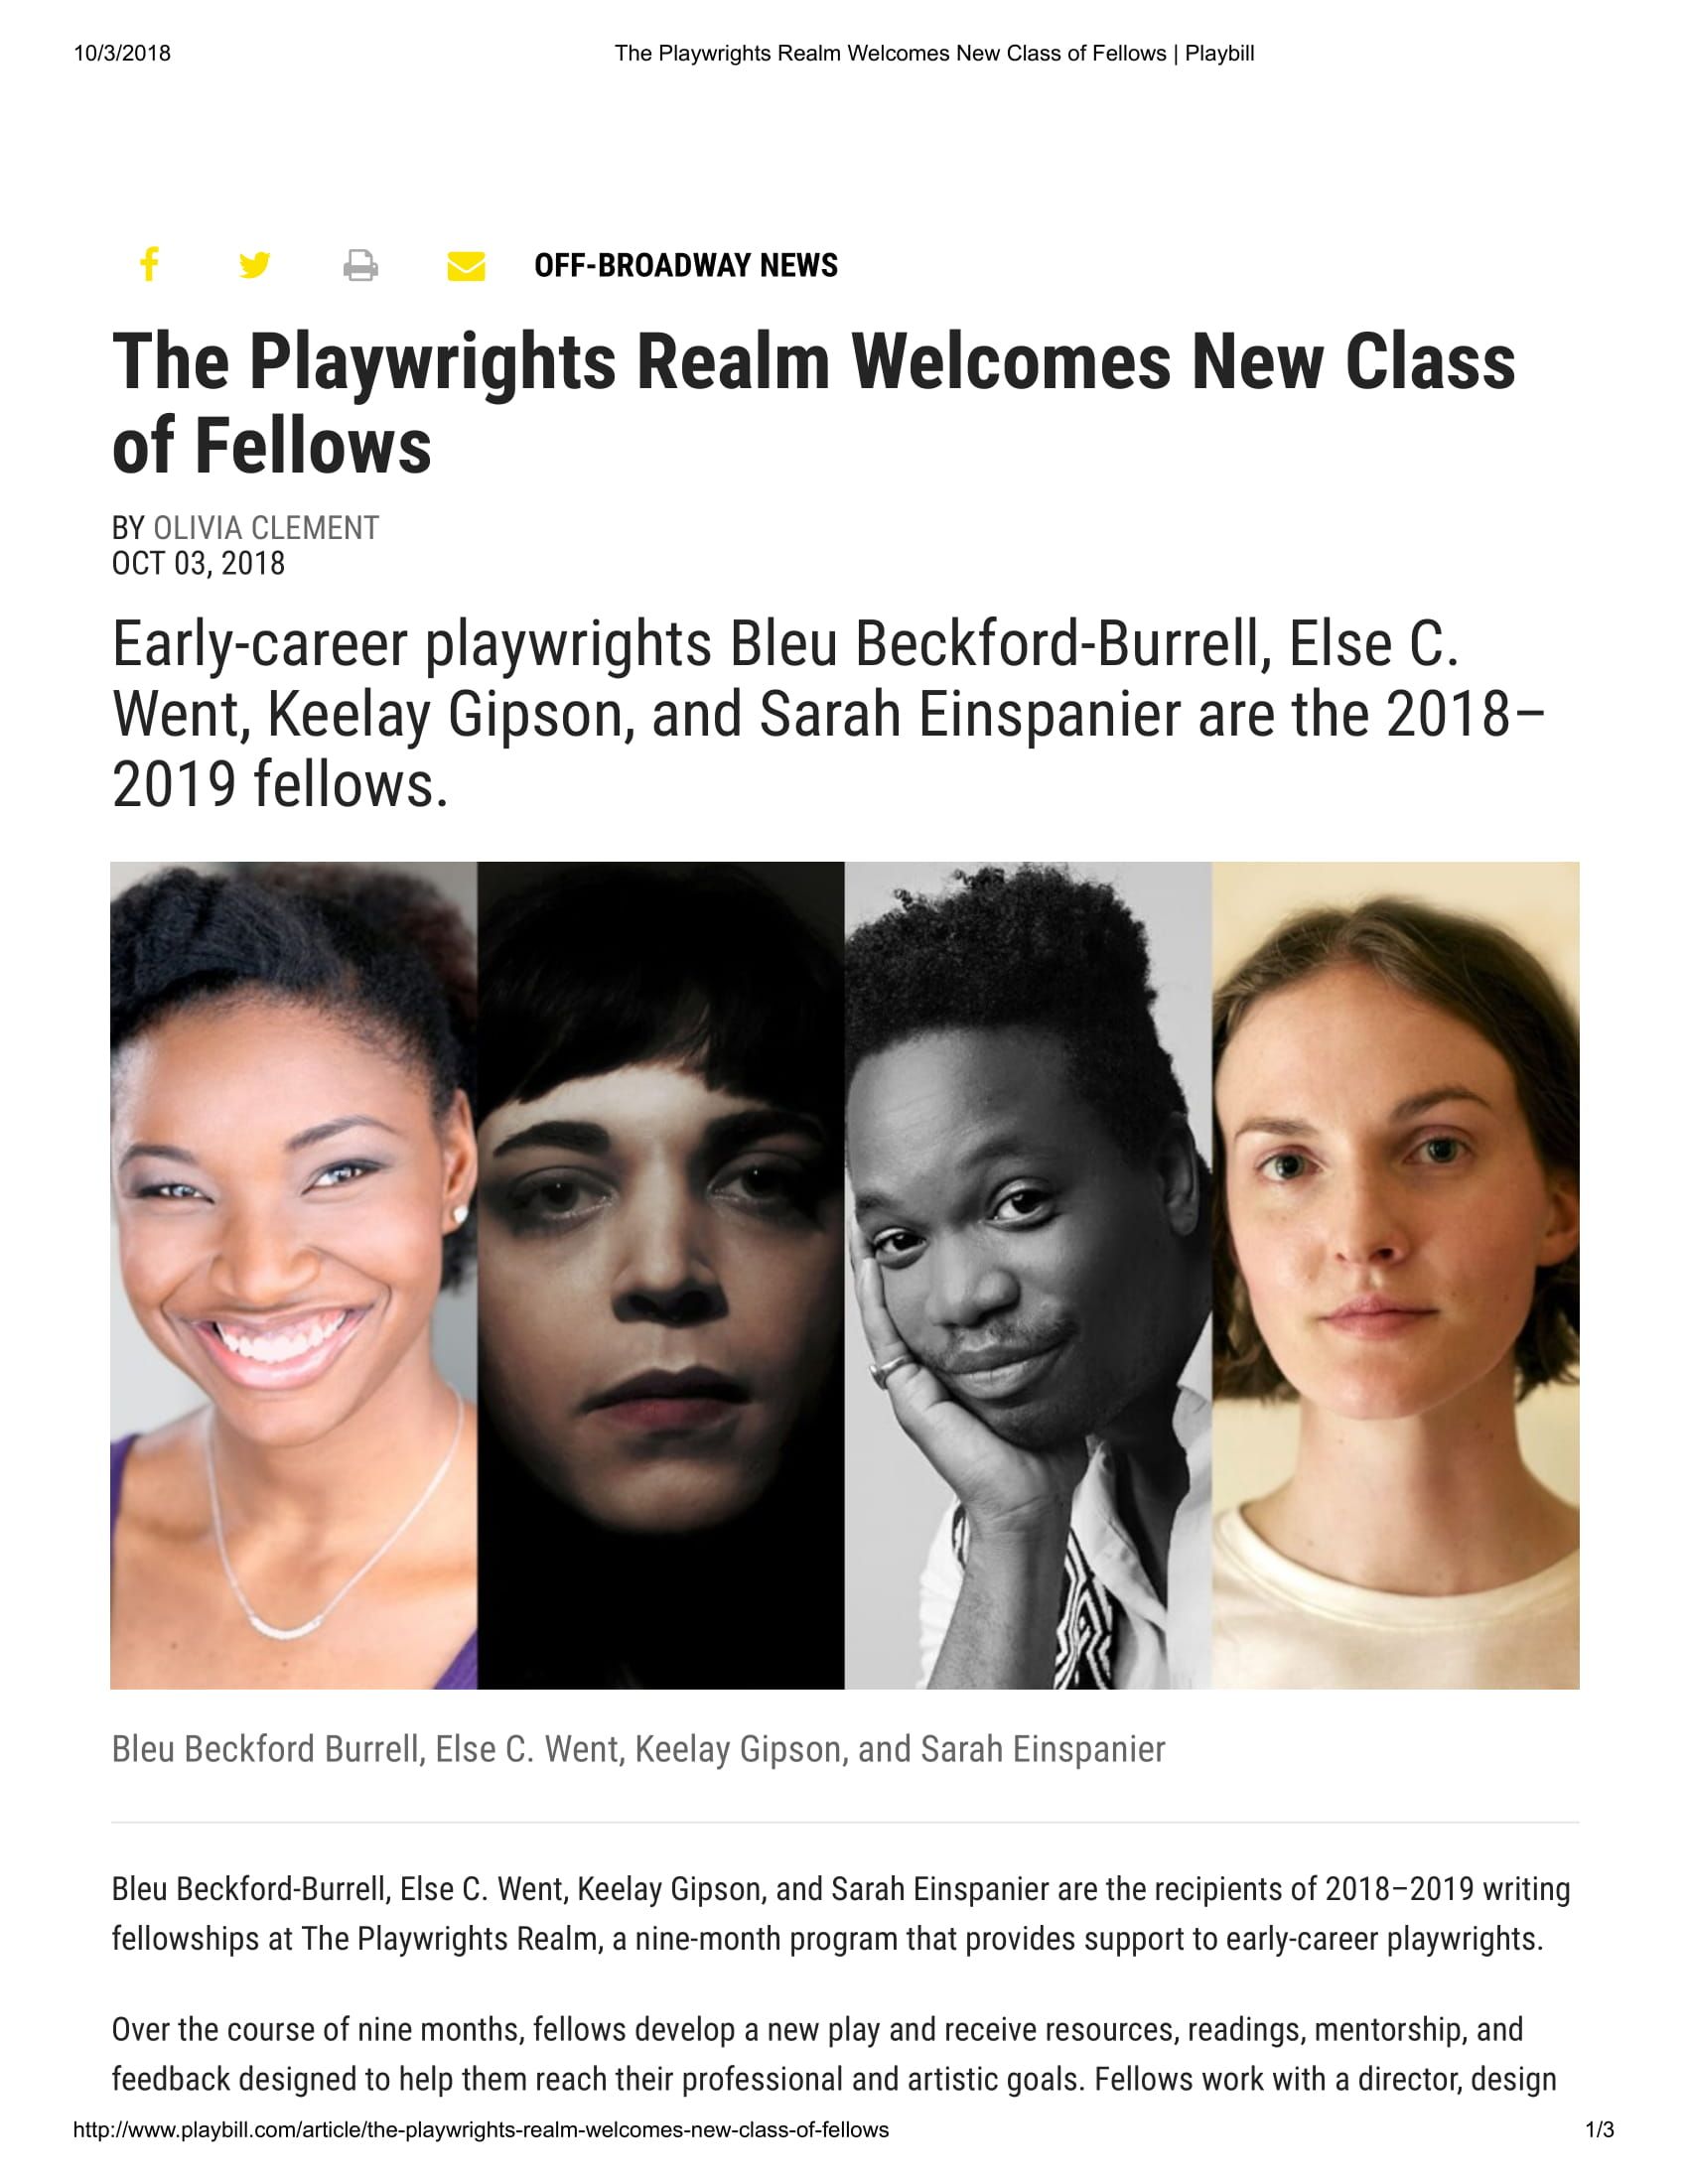 The Playwrights Realm Welcomes New Class of Fellows _ Playbill-1.jpg